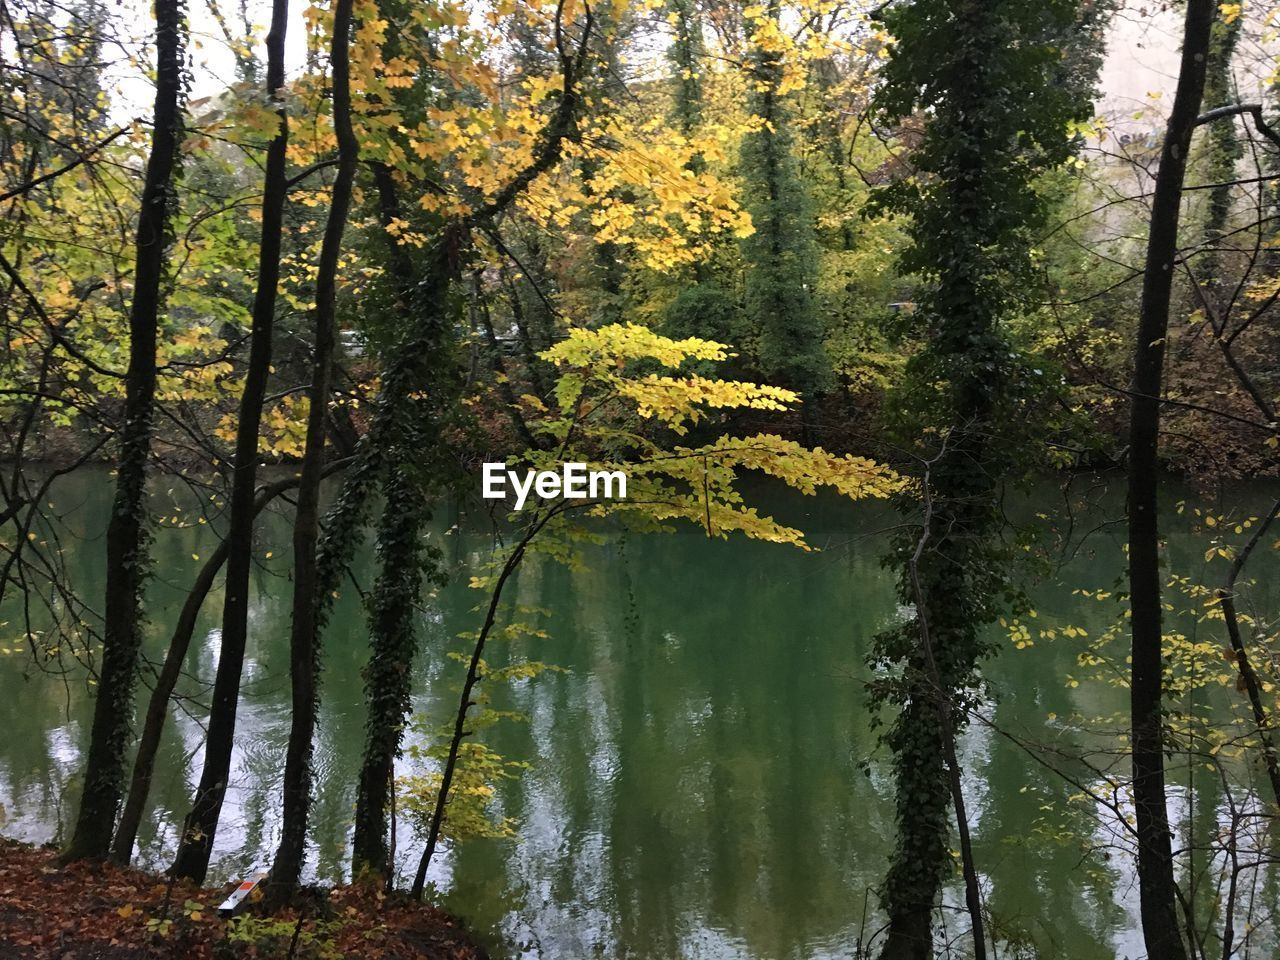 tree, plant, beauty in nature, forest, nature, tranquility, growth, water, lake, no people, land, tree trunk, trunk, reflection, outdoors, day, tranquil scene, branch, scenics - nature, woodland, change, leaves